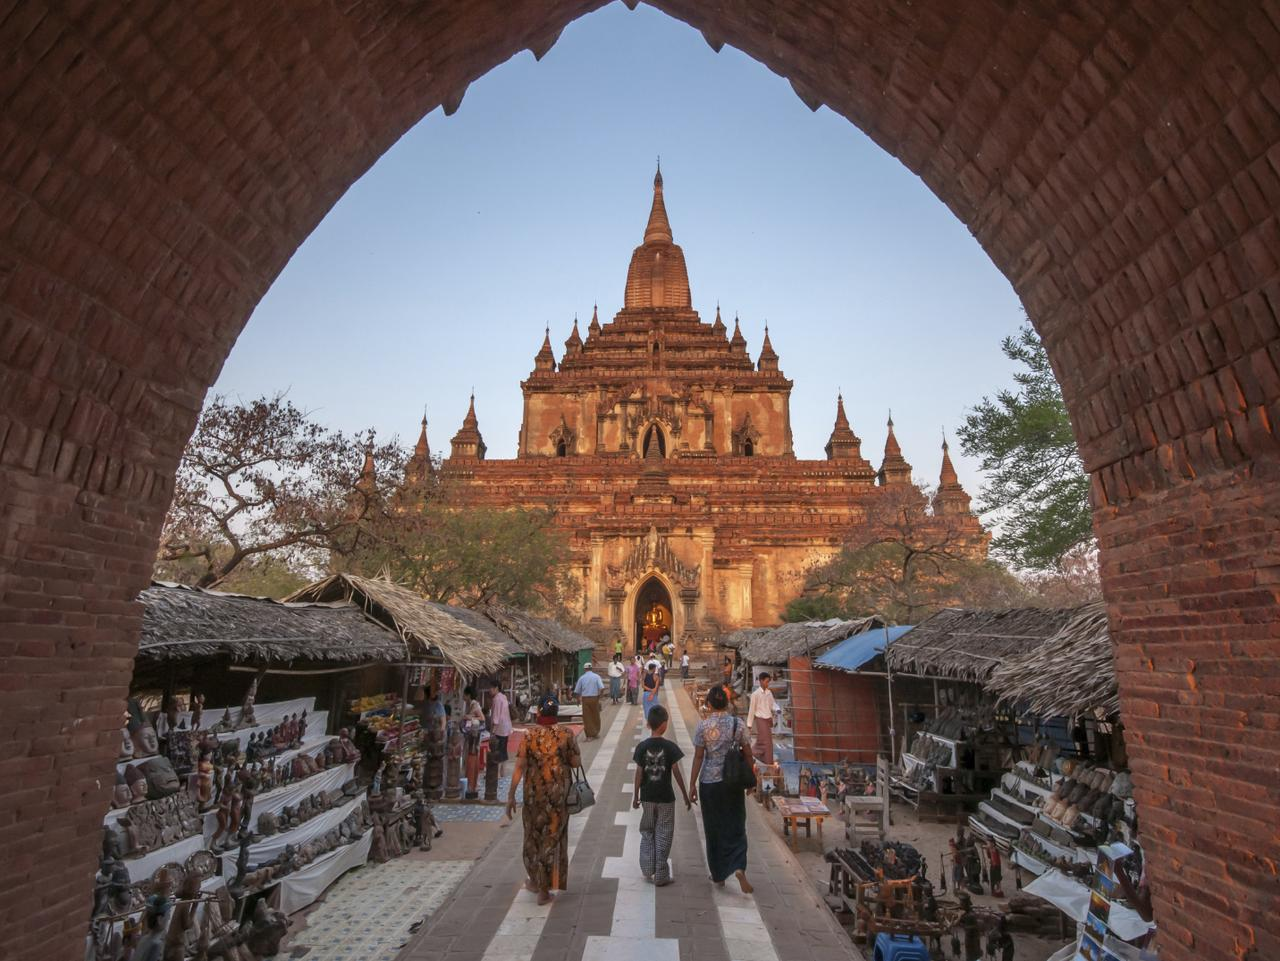 ESCAPE: MYANMAR .. Sarah Nicholson story .. March 19,2011 : Htilominlo Temple entrance with tourist passing by street market to enter the temple in Bagan, Myanmar.This large temple was built by King Nantaungmya in 1218. Situated close to the road between Nyaung U and Bagan. Picture: iStock